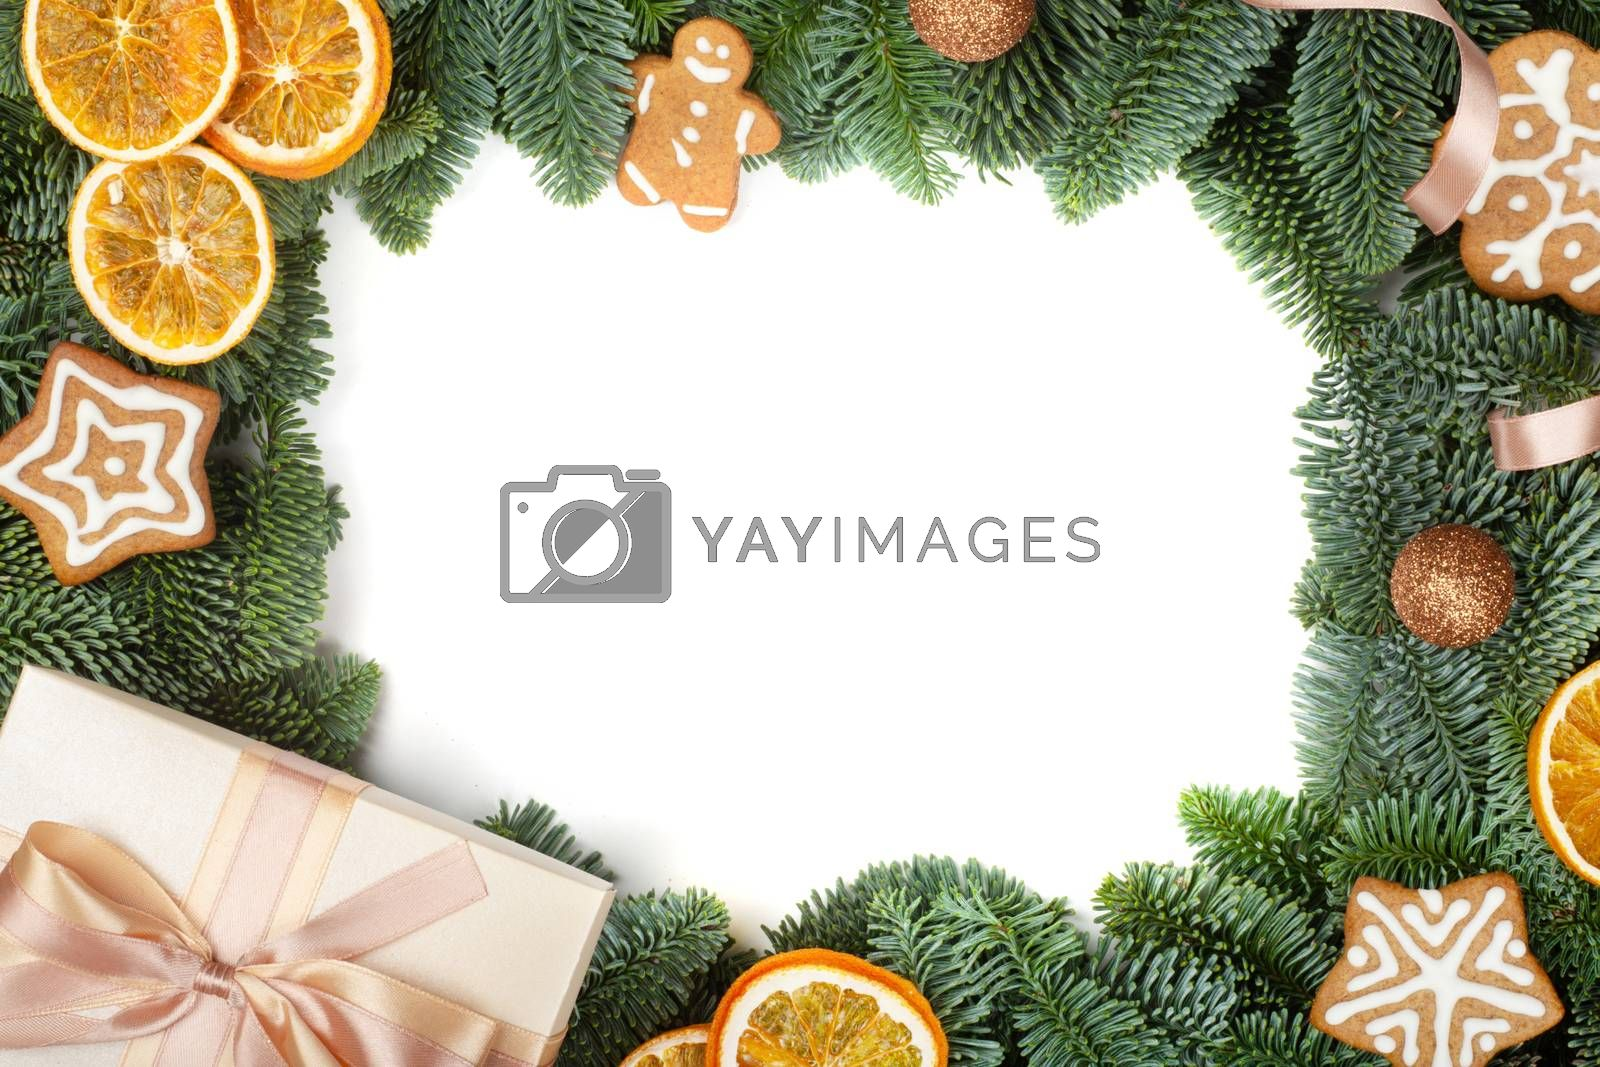 Christmas design boder frame greeting card of noble fir tree branches gift and gingerbread cookies isolated on white background